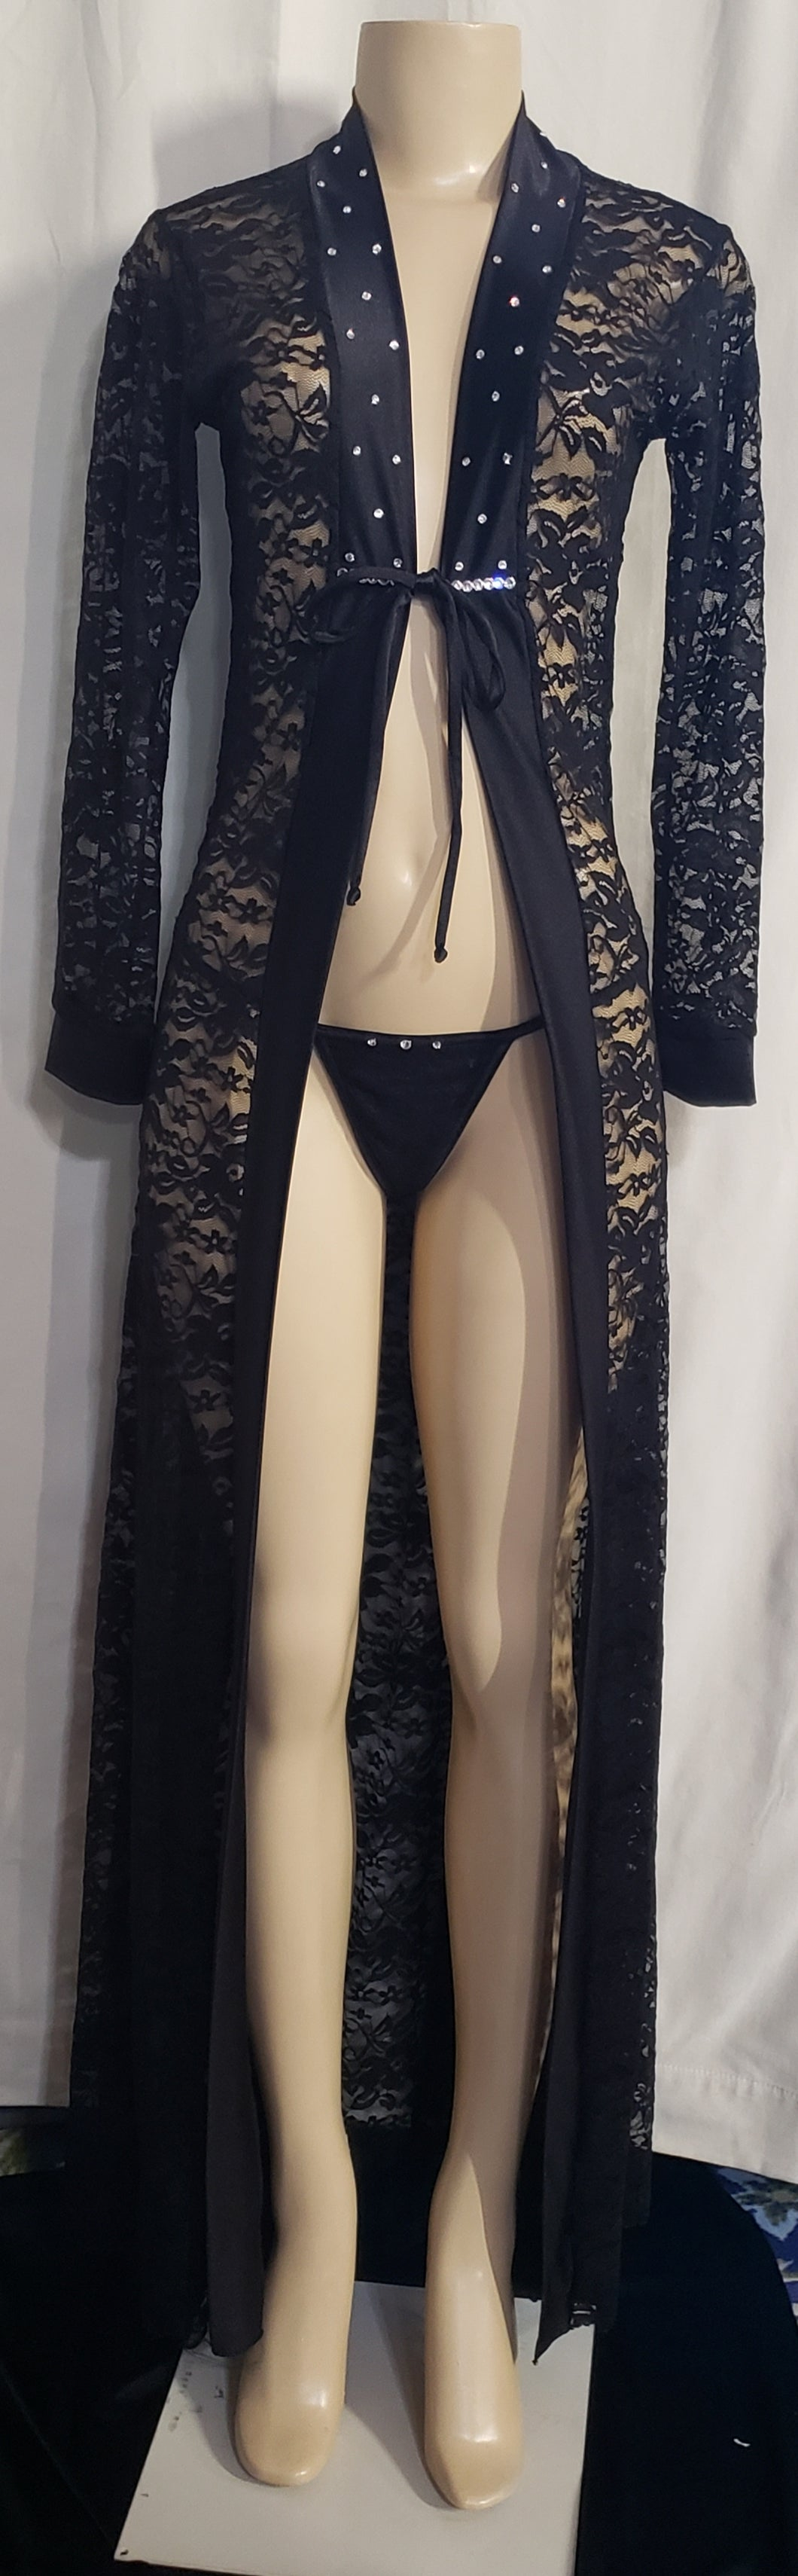 RO 4110 Long Lace Robe with G string Embellish with Rhinestones - [collection] - Honeybunnies.com